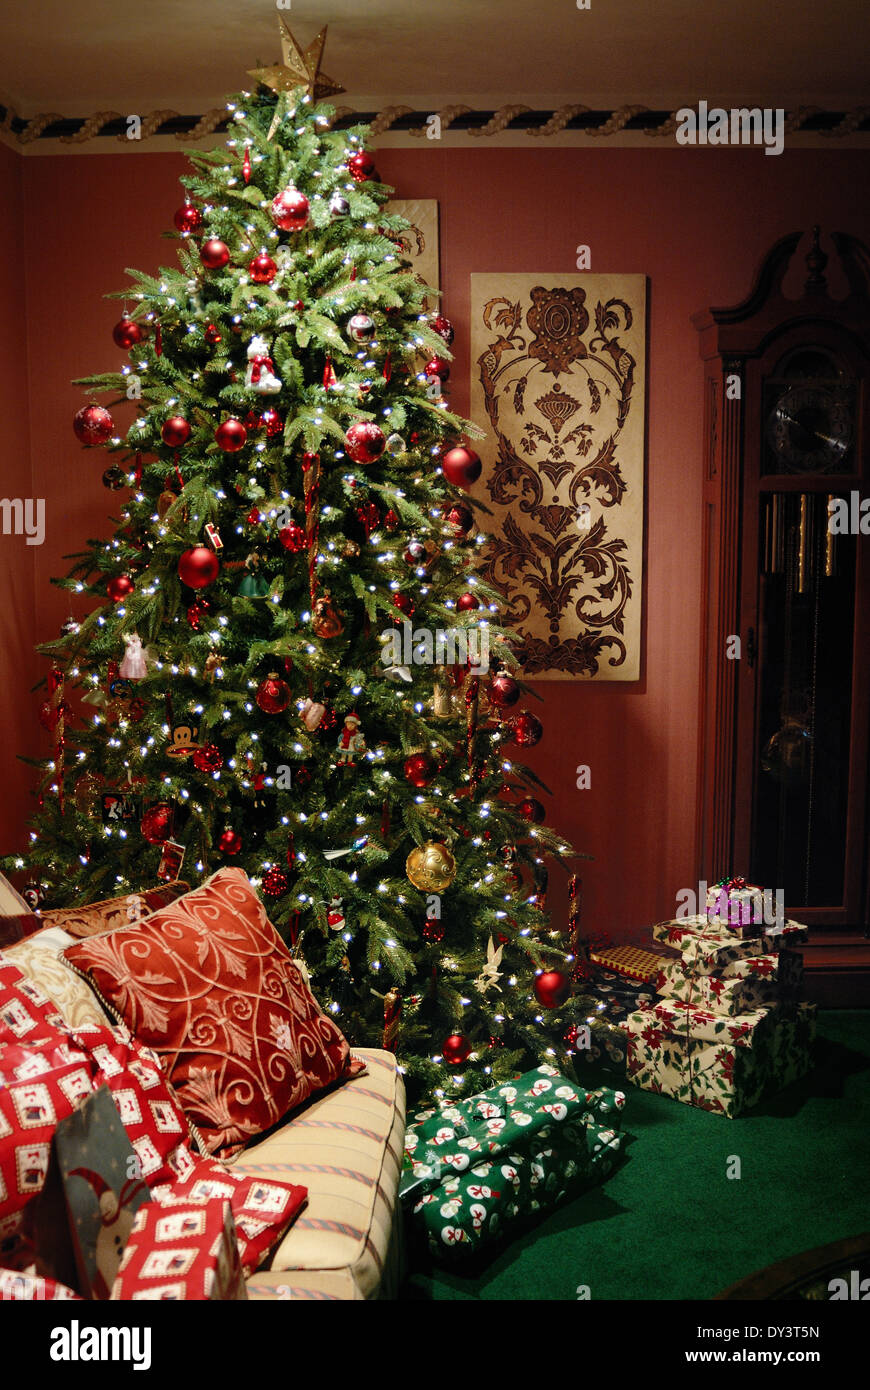 A Christmas tree is beautifully decorated and surrounded by Christmas gifts.. - Stock Image